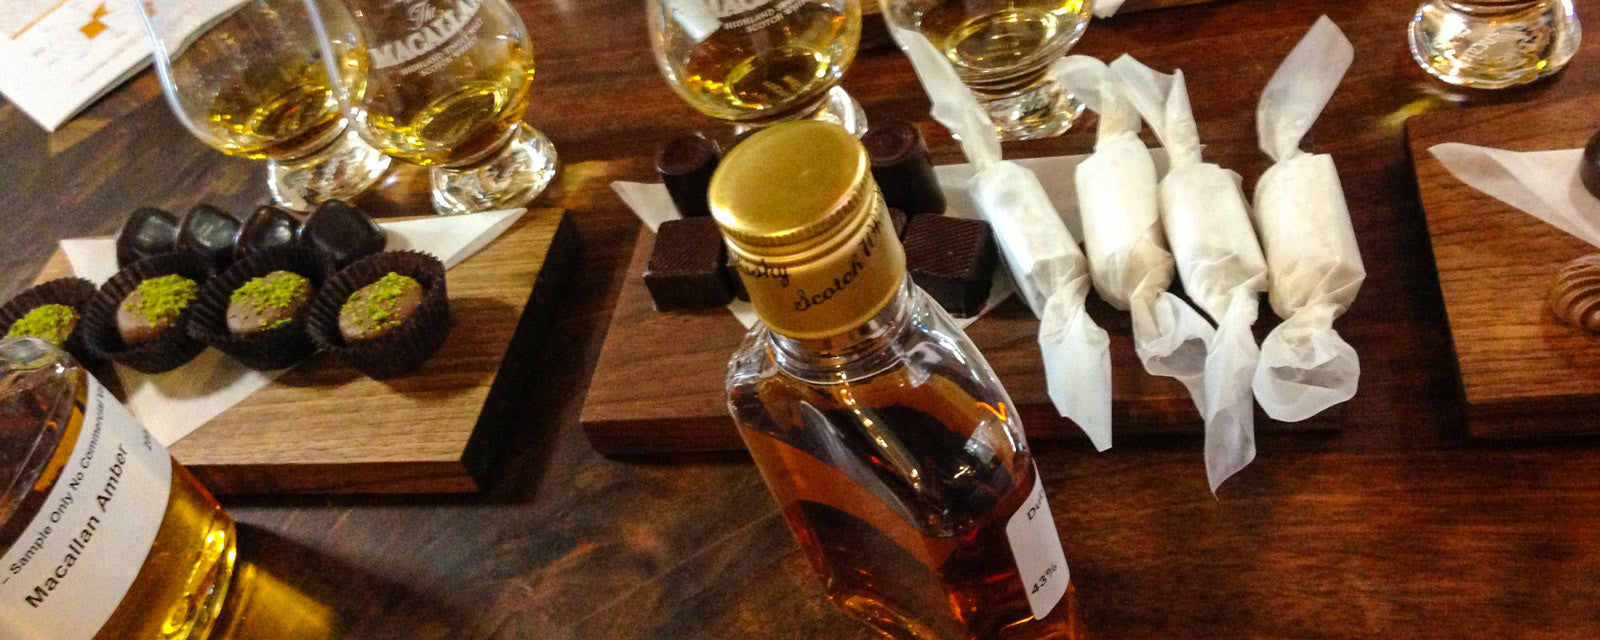 The Macallan- whisky pairings